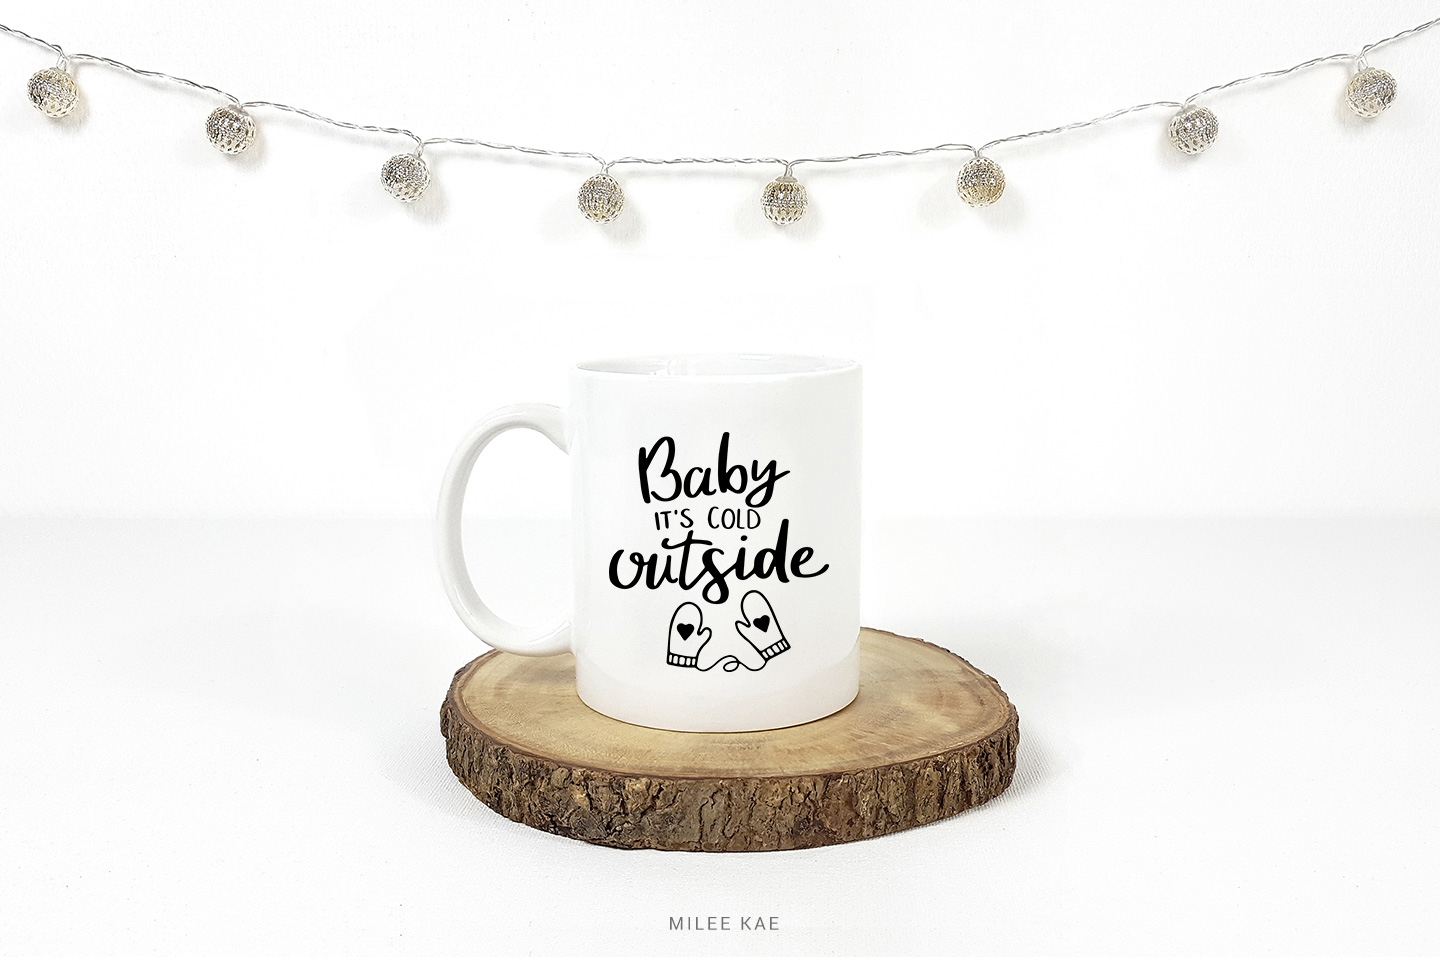 Baby it's cold outside, Cutting file, SVG, Decal example image 2